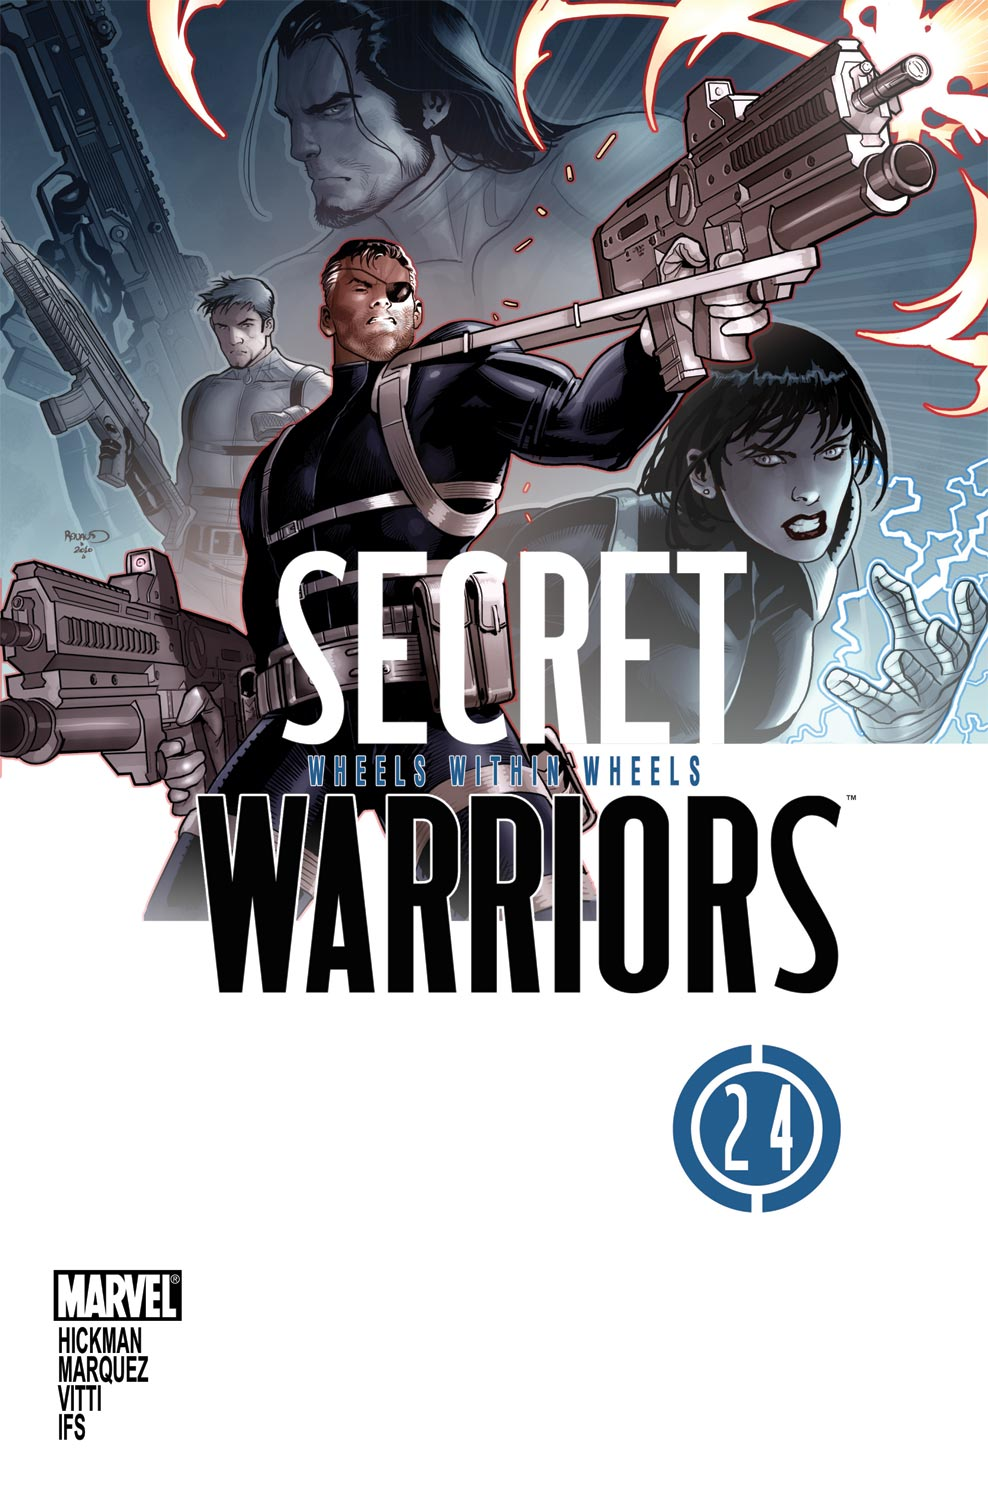 Secret Warriors (2009) #24